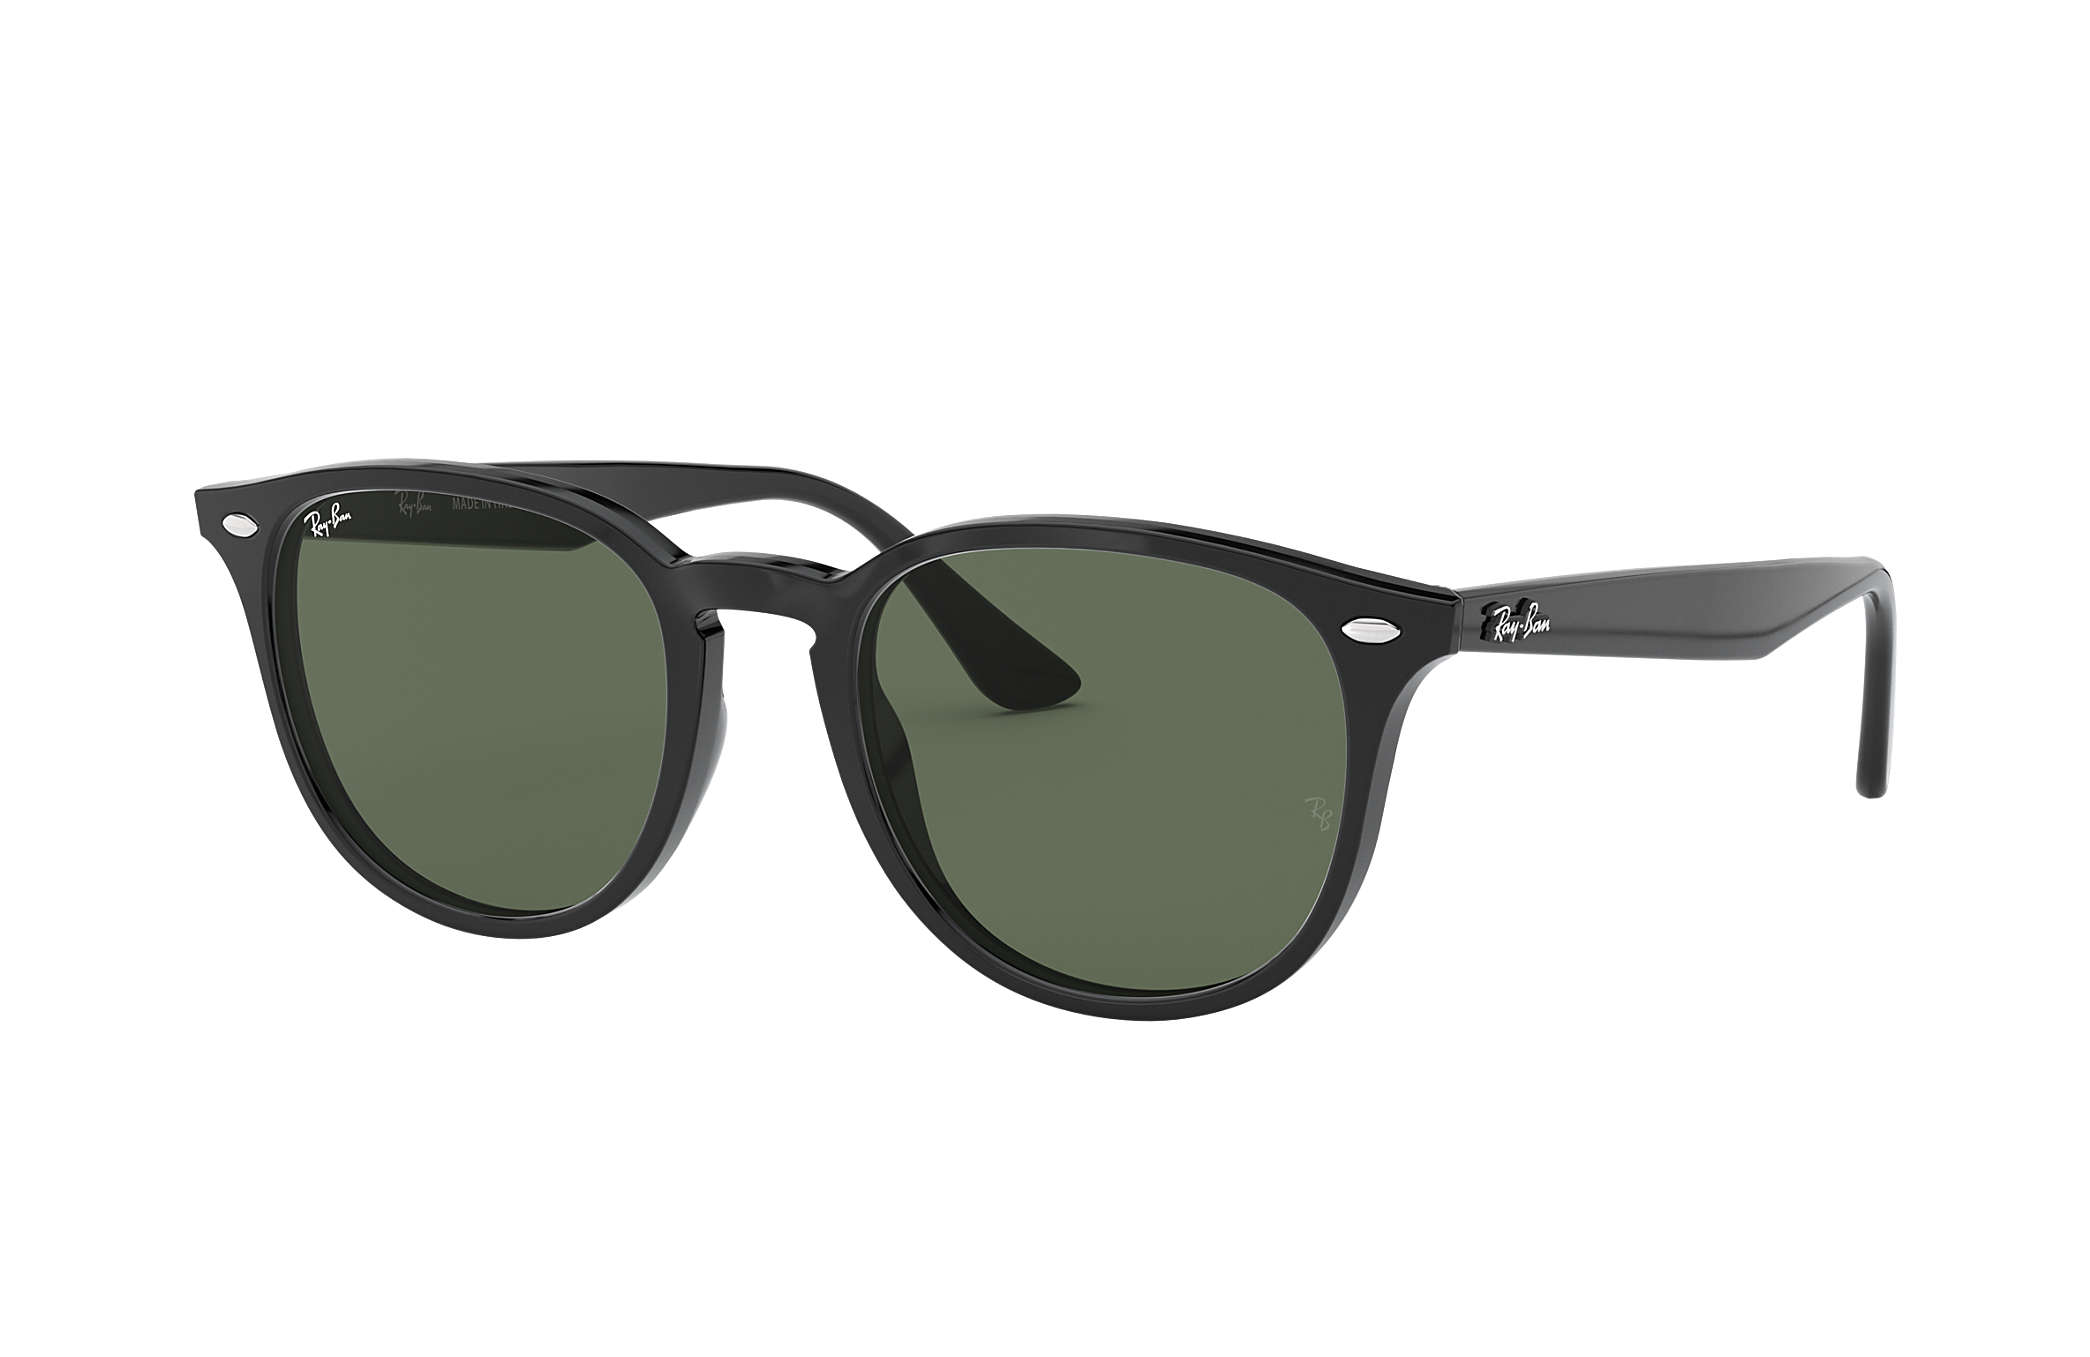 d9f99153fd5 Ray-Ban RB4259 Black - Propionate - Green Lenses - 0RB4259601 7151 ...